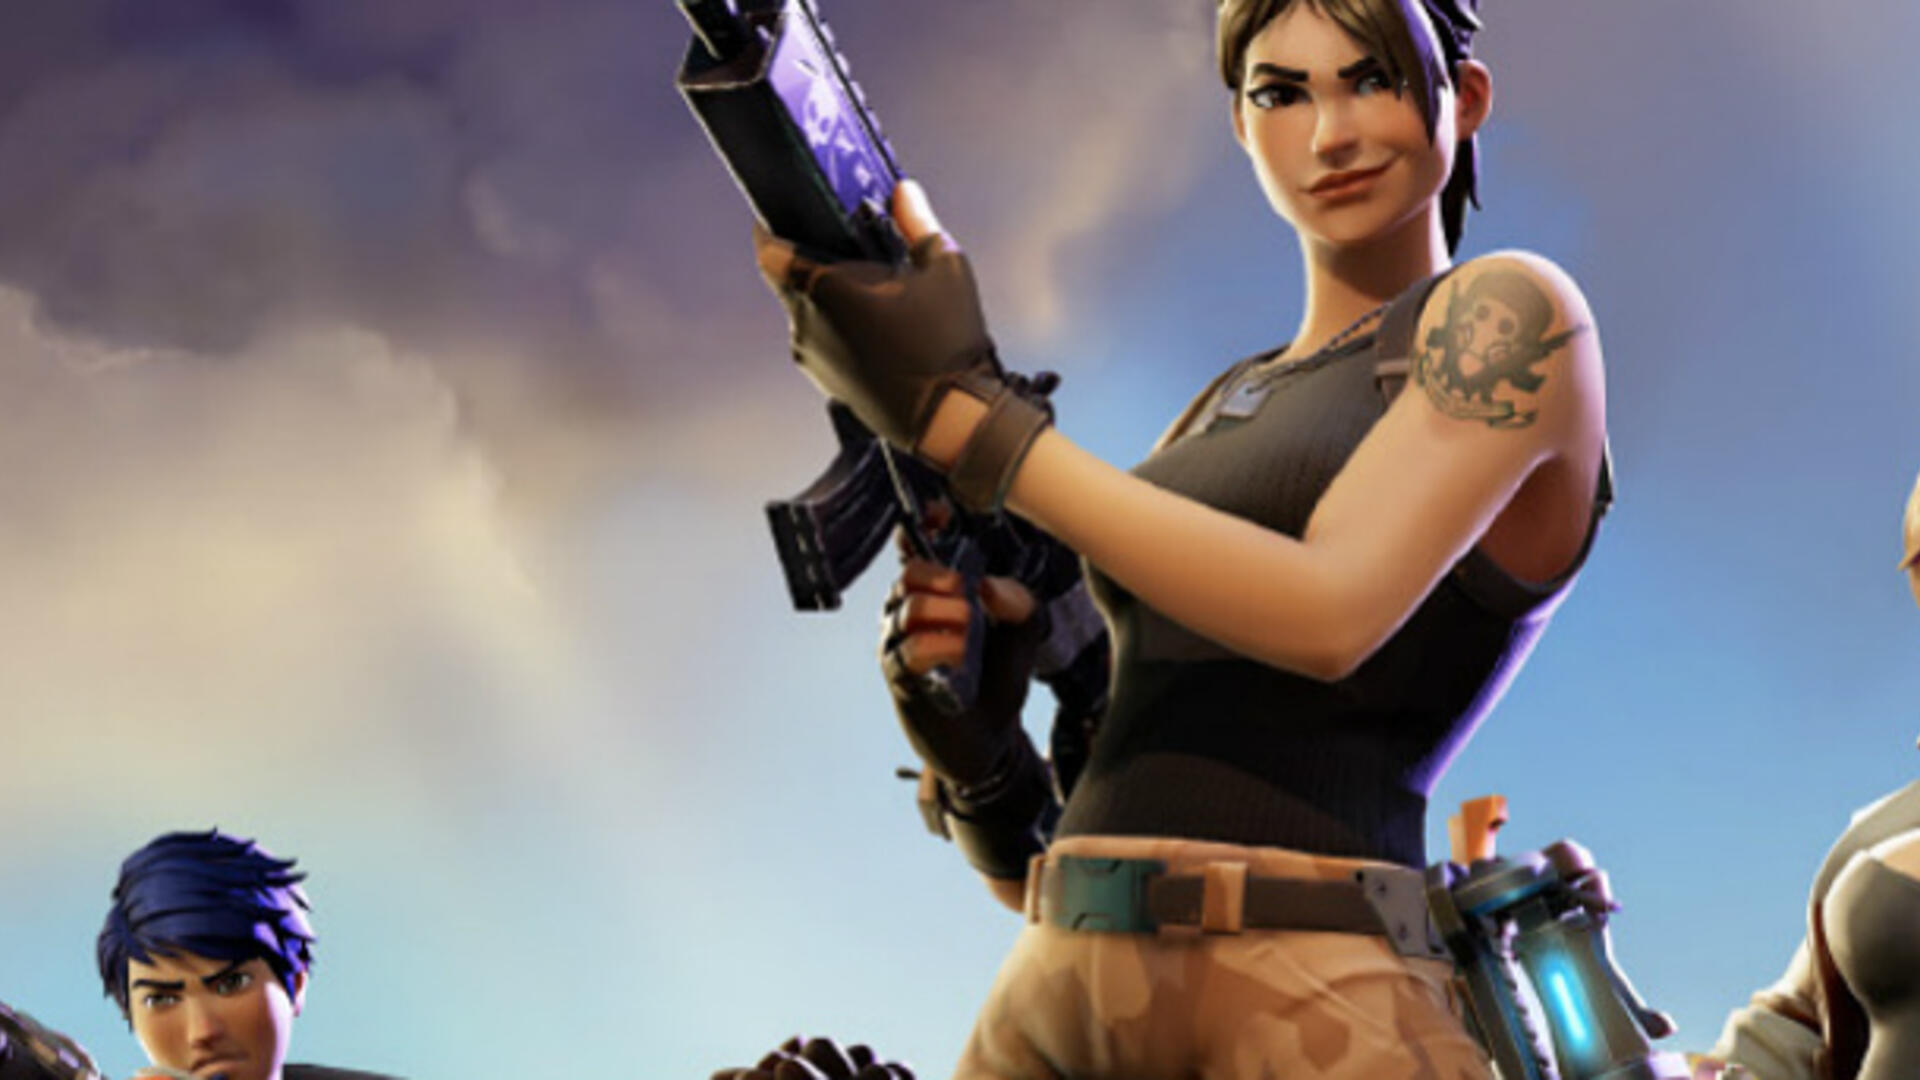 Fortnite 3.1.0 Patch Opens Up New Areas, New Weapons